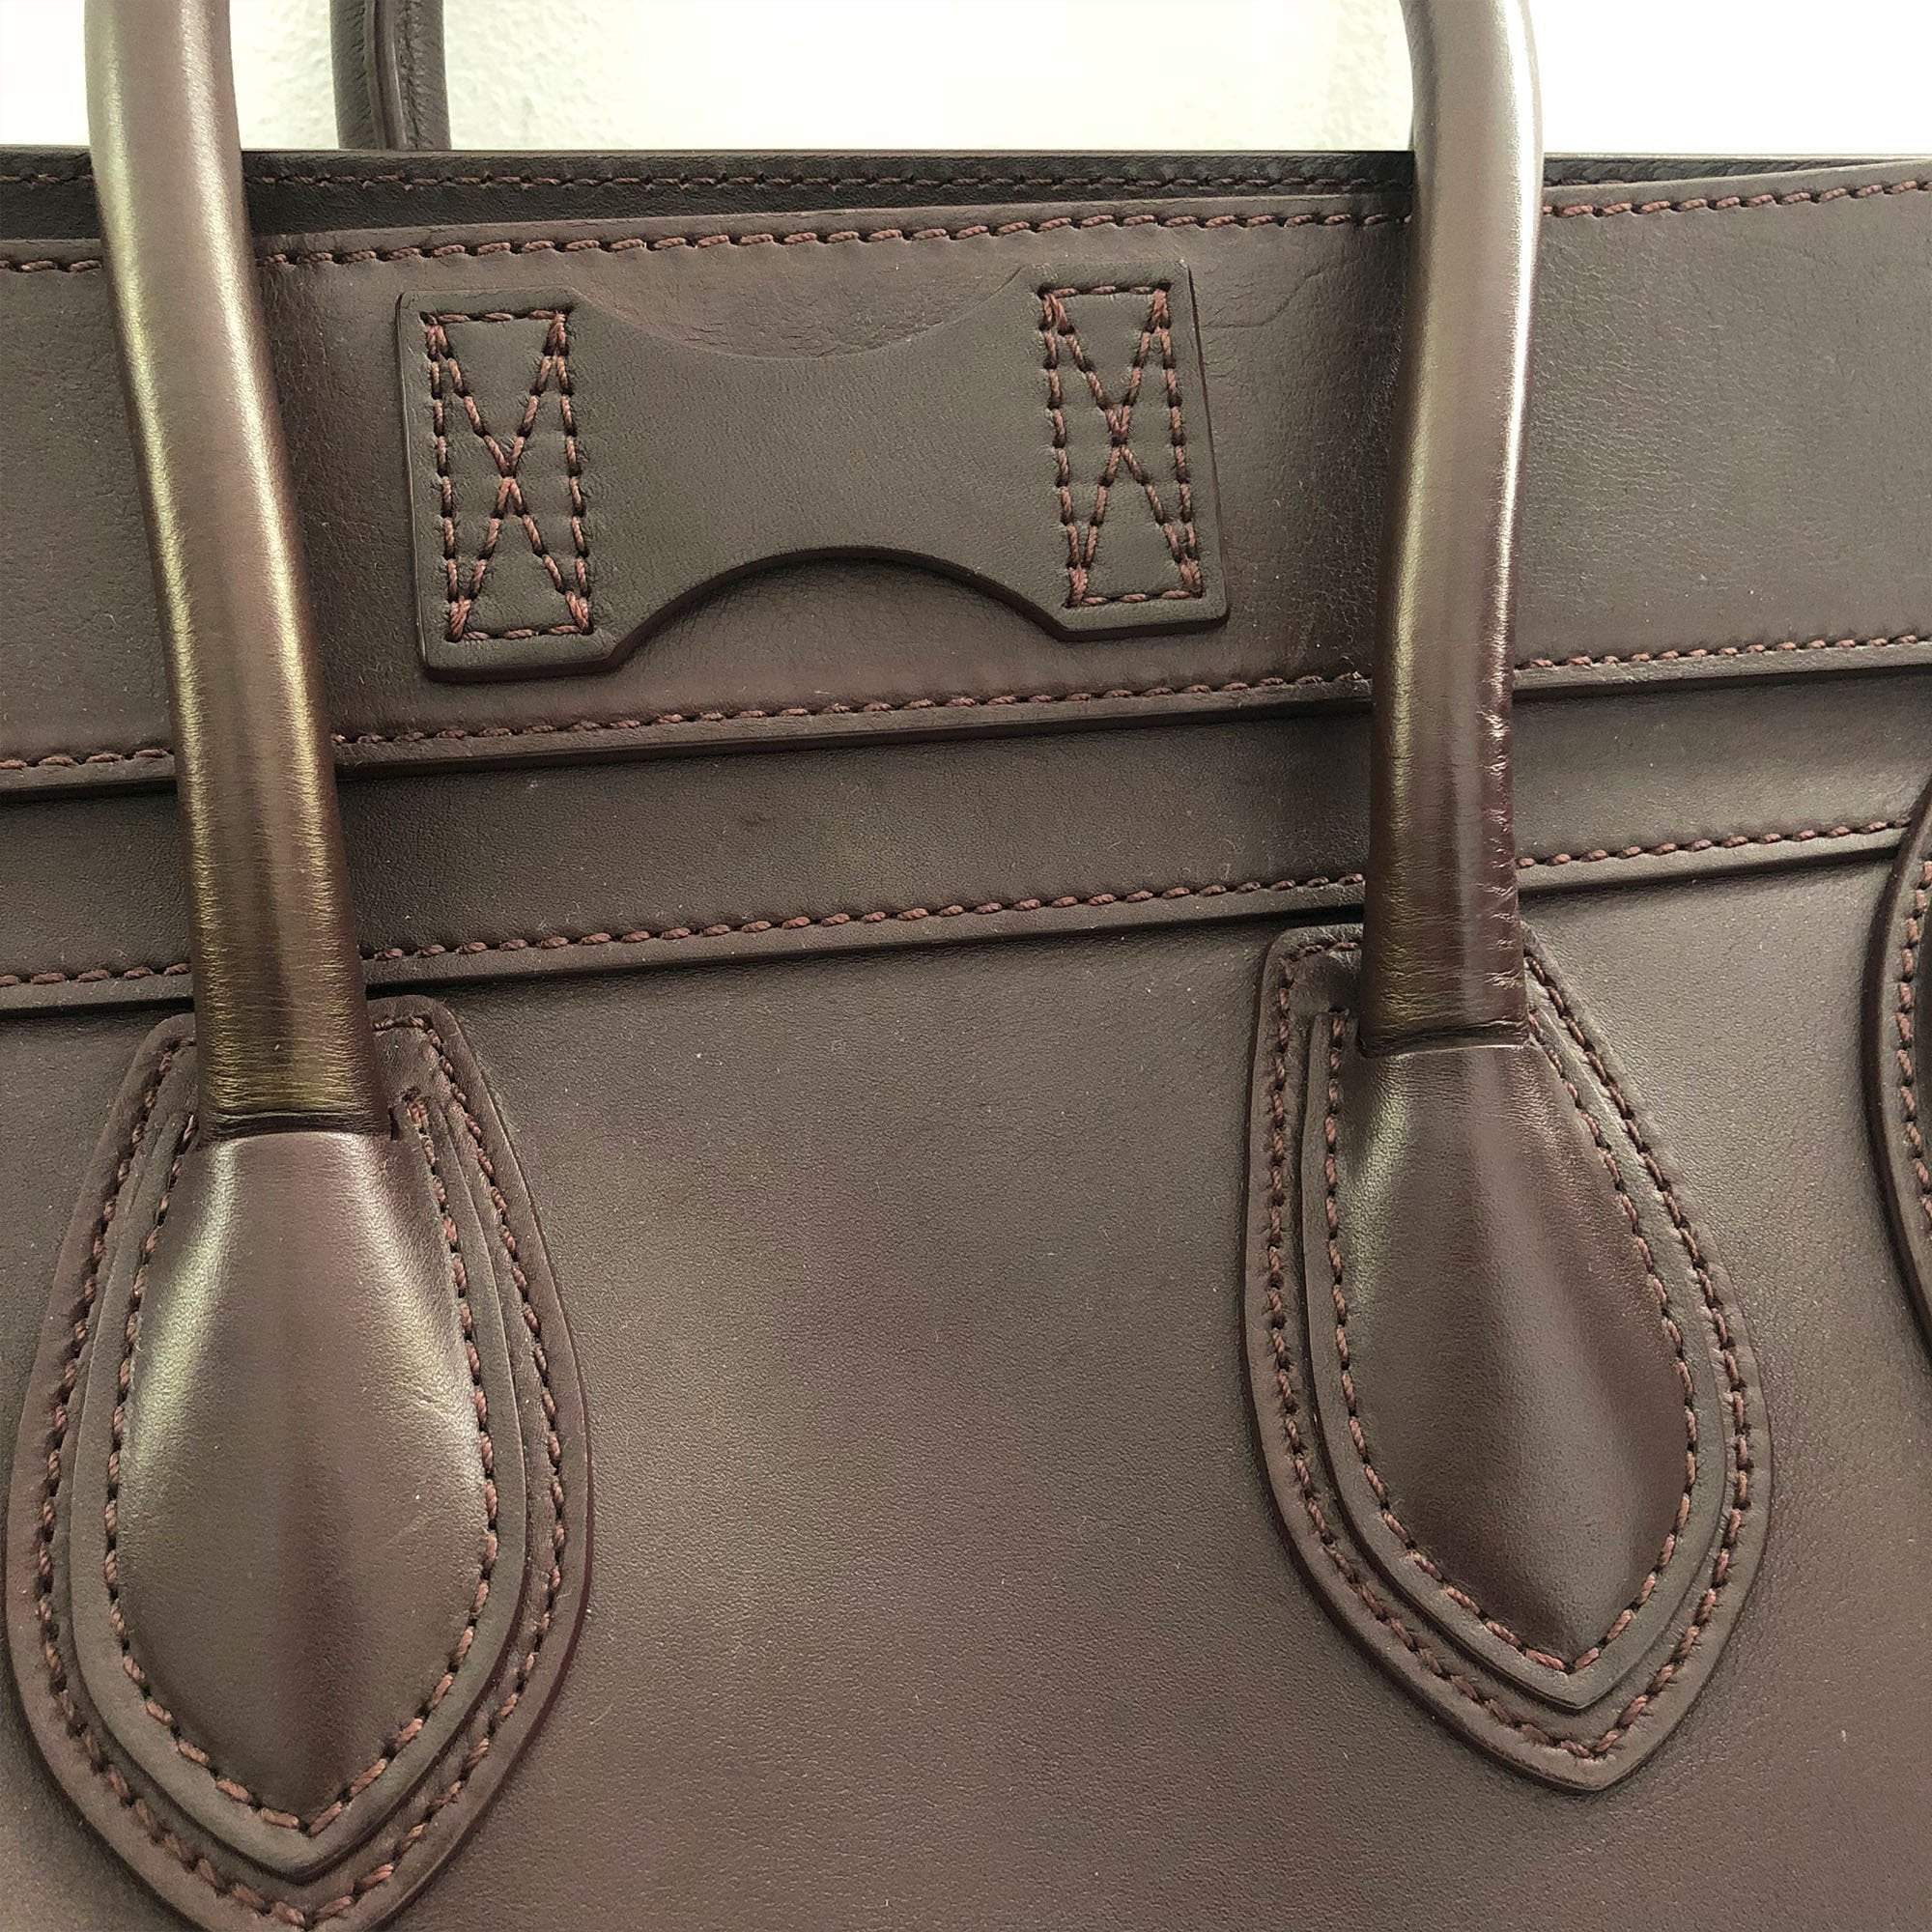 Celine Burgundy Luggage Medium Tote Bag